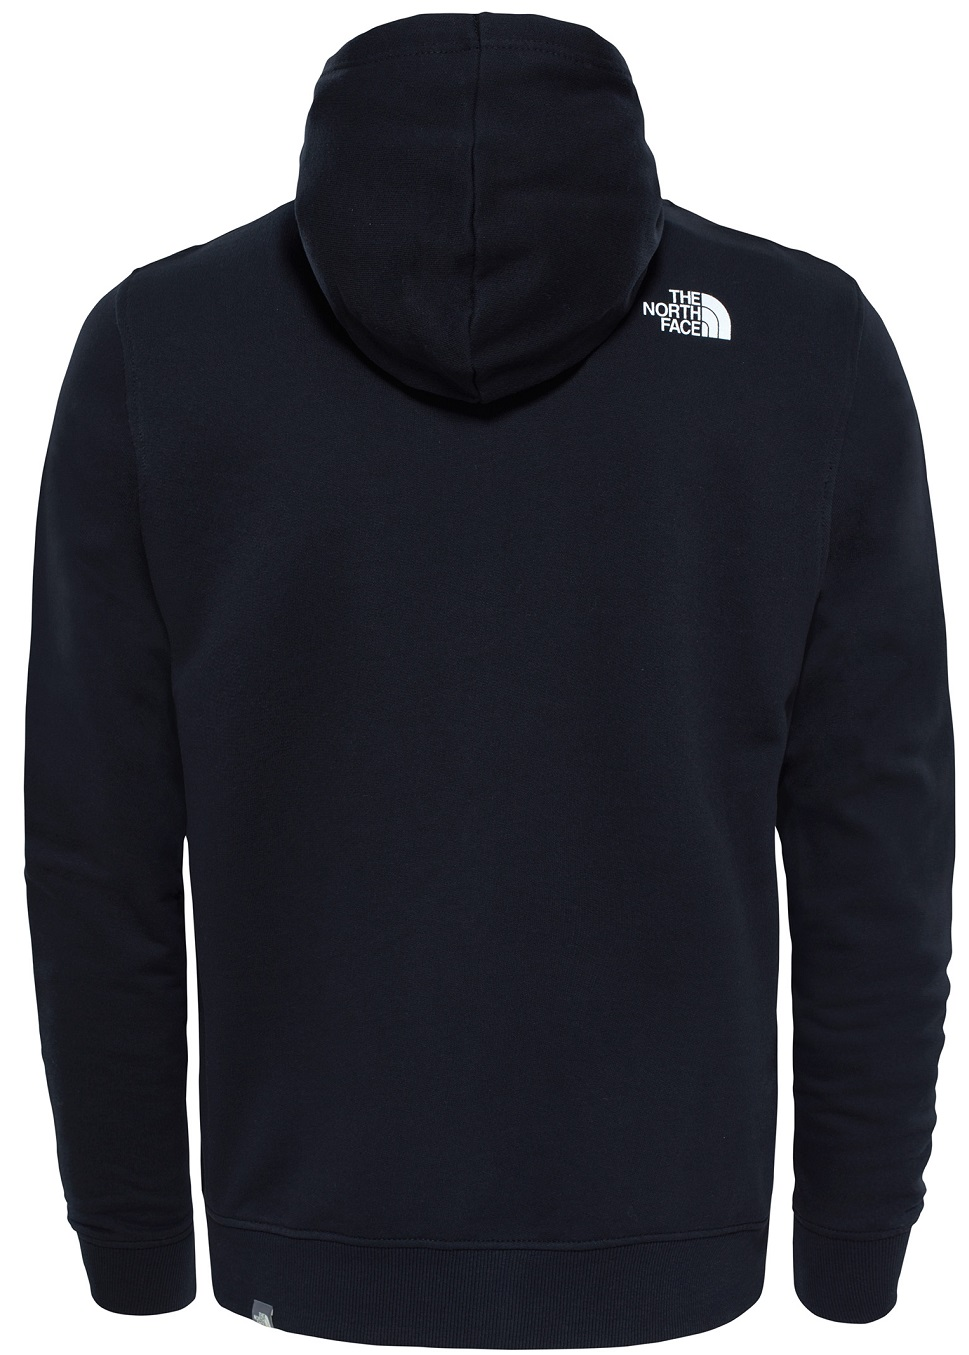 THE-NORTH-FACE-TNF-Open-Gate-Light-de-Randonnee-Sweat-a-Capuche-pour-Hommes miniature 9